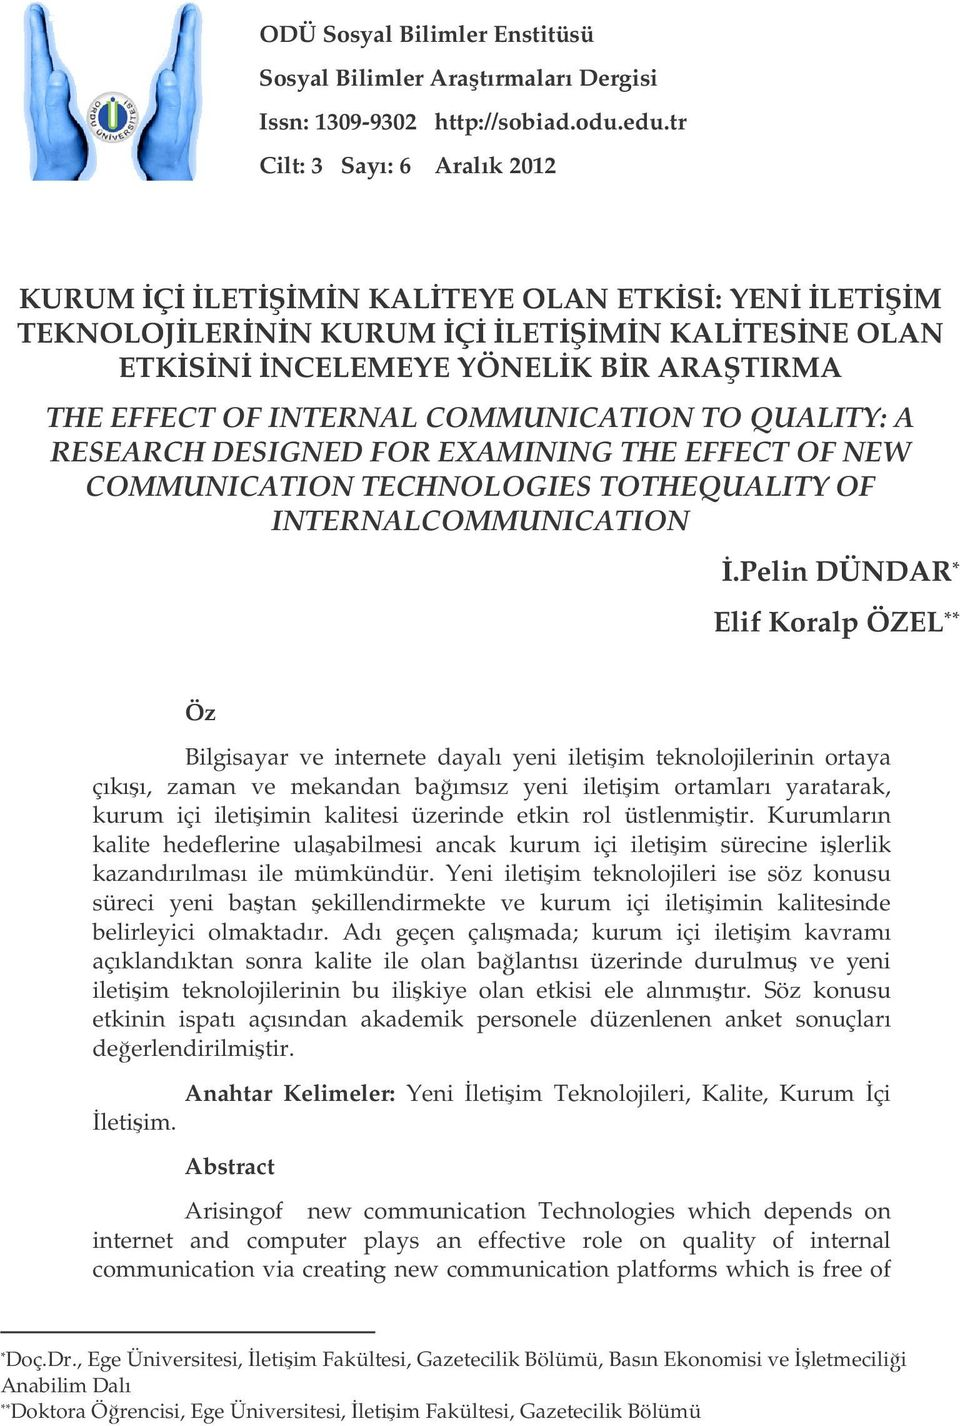 A RESEARCH DESIGNED FOR EXAMINING THE EFFECT OF NEW COMMUNICATION TECHNOLOGIES TOTHEQUALITY OF INTERNALCOMMUNICATION.